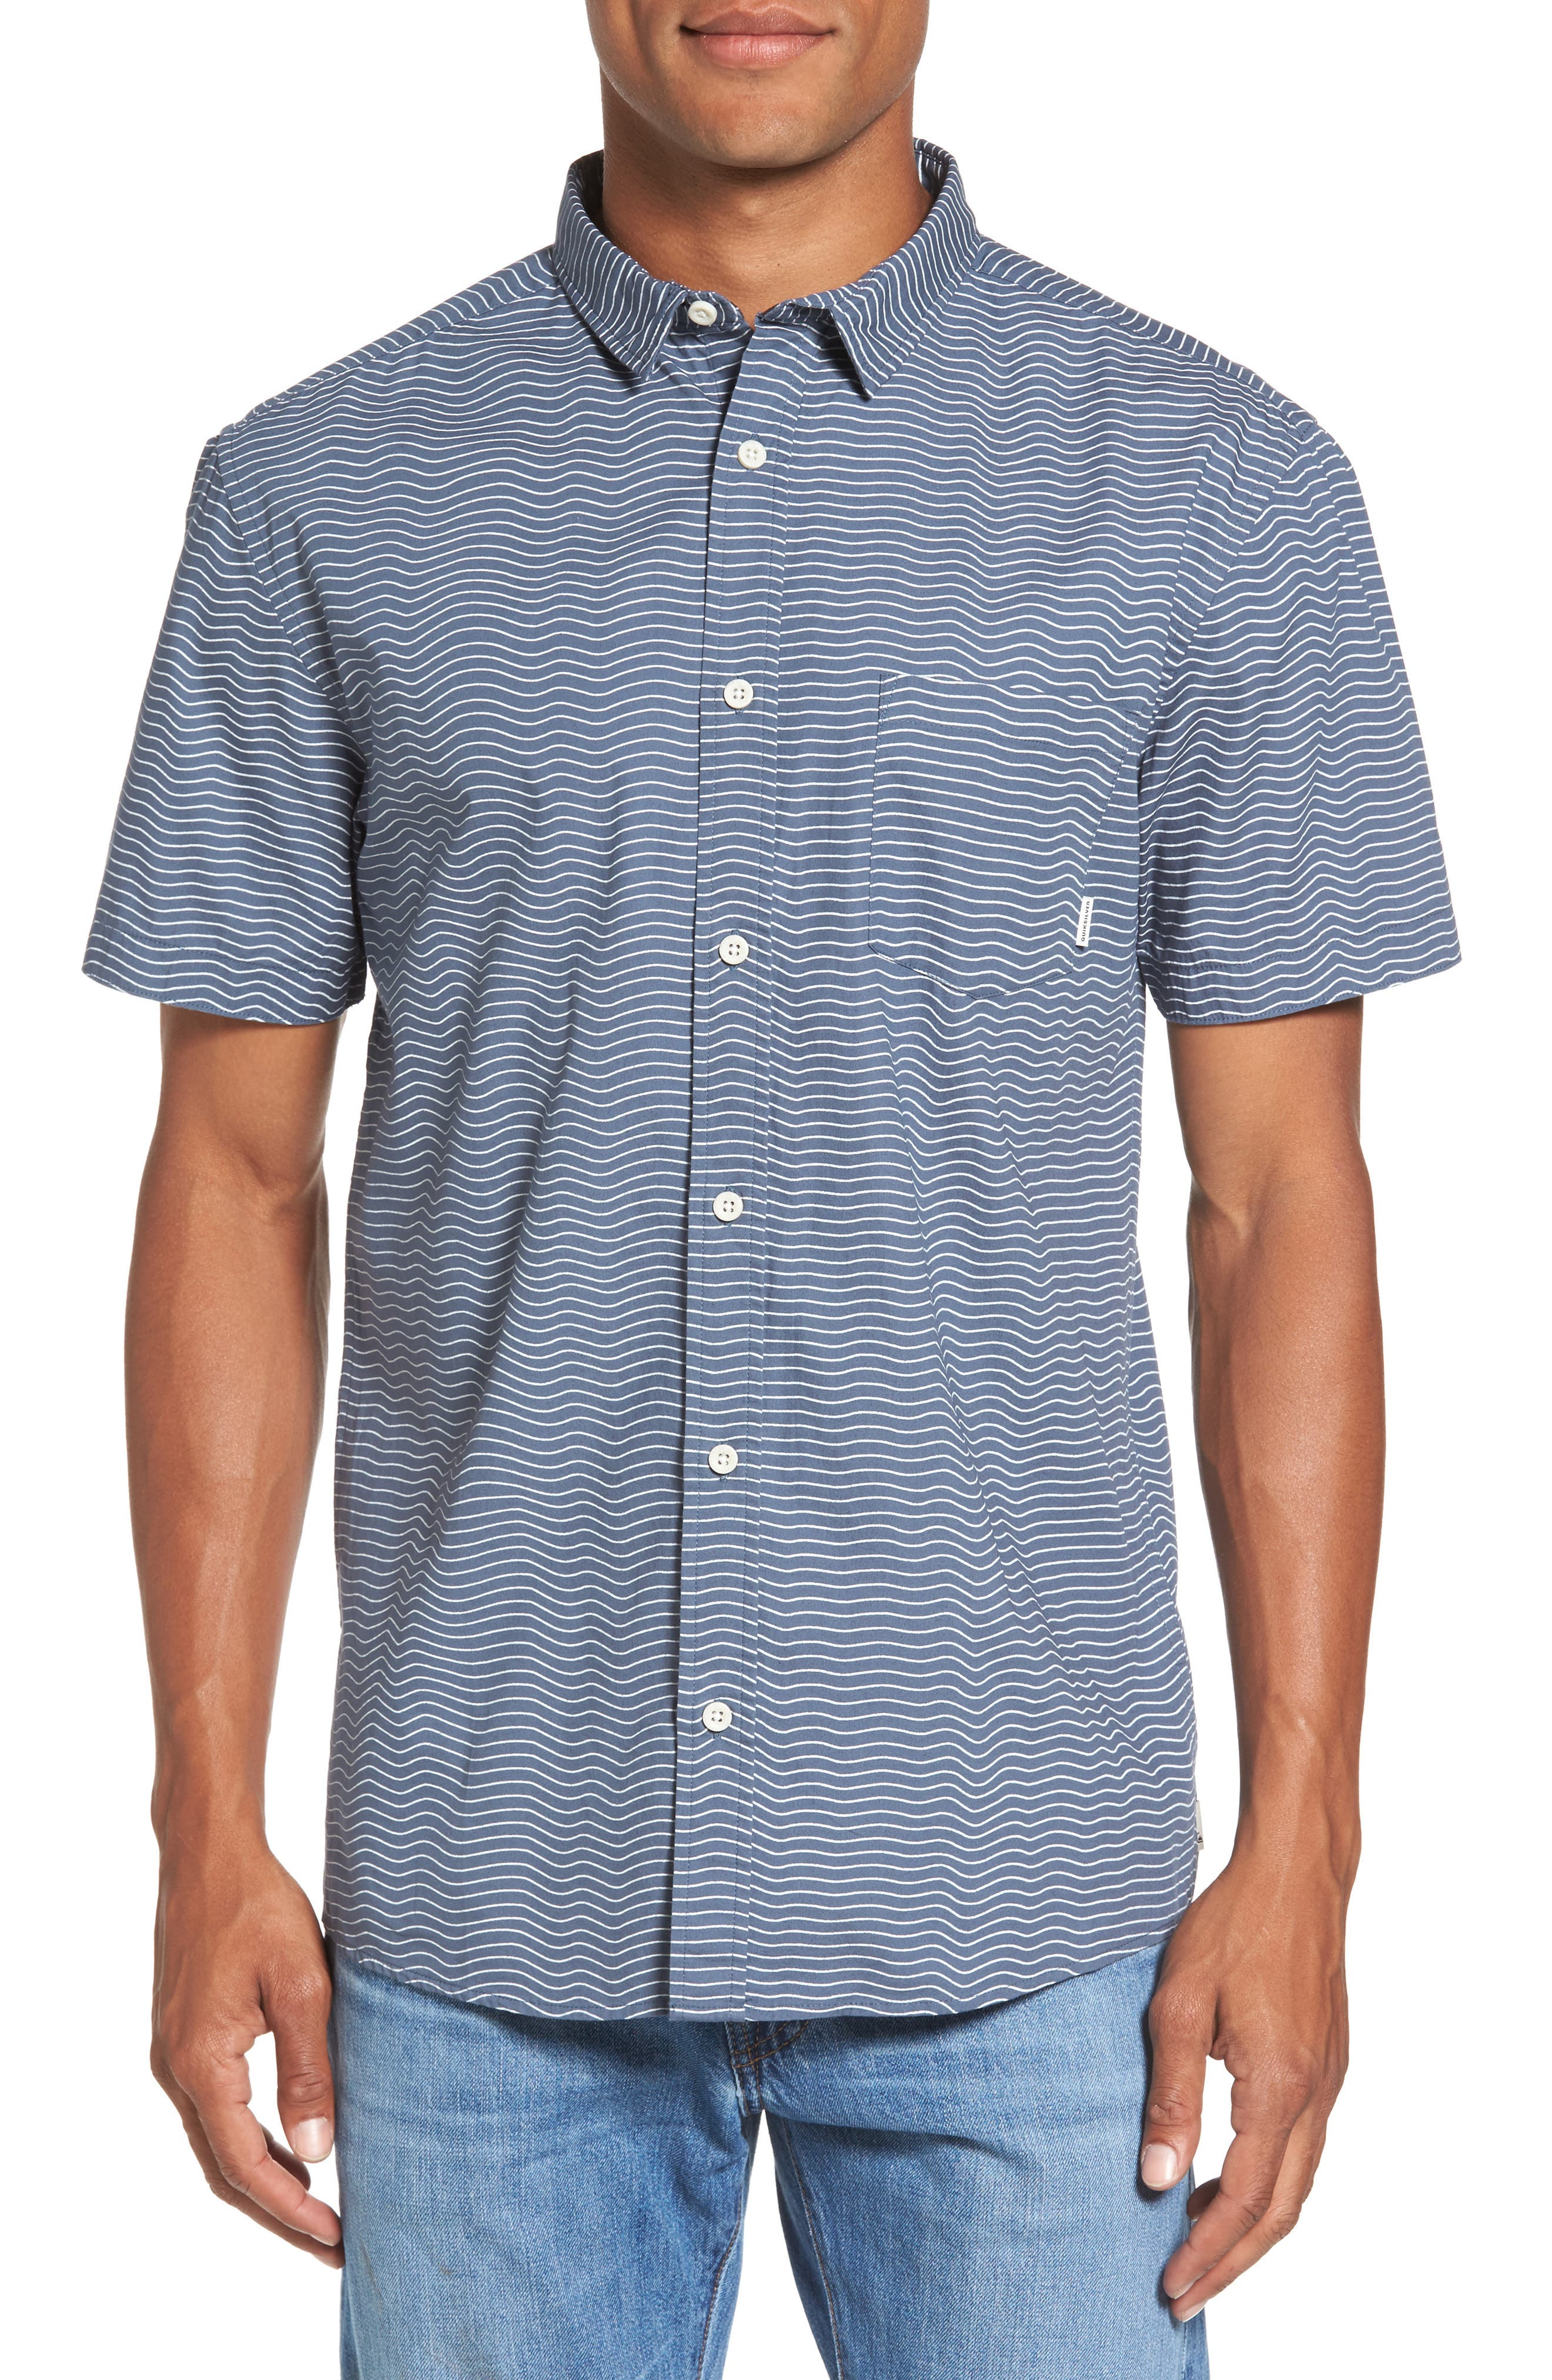 Quiksilver Heat Wave Stripe Shirt